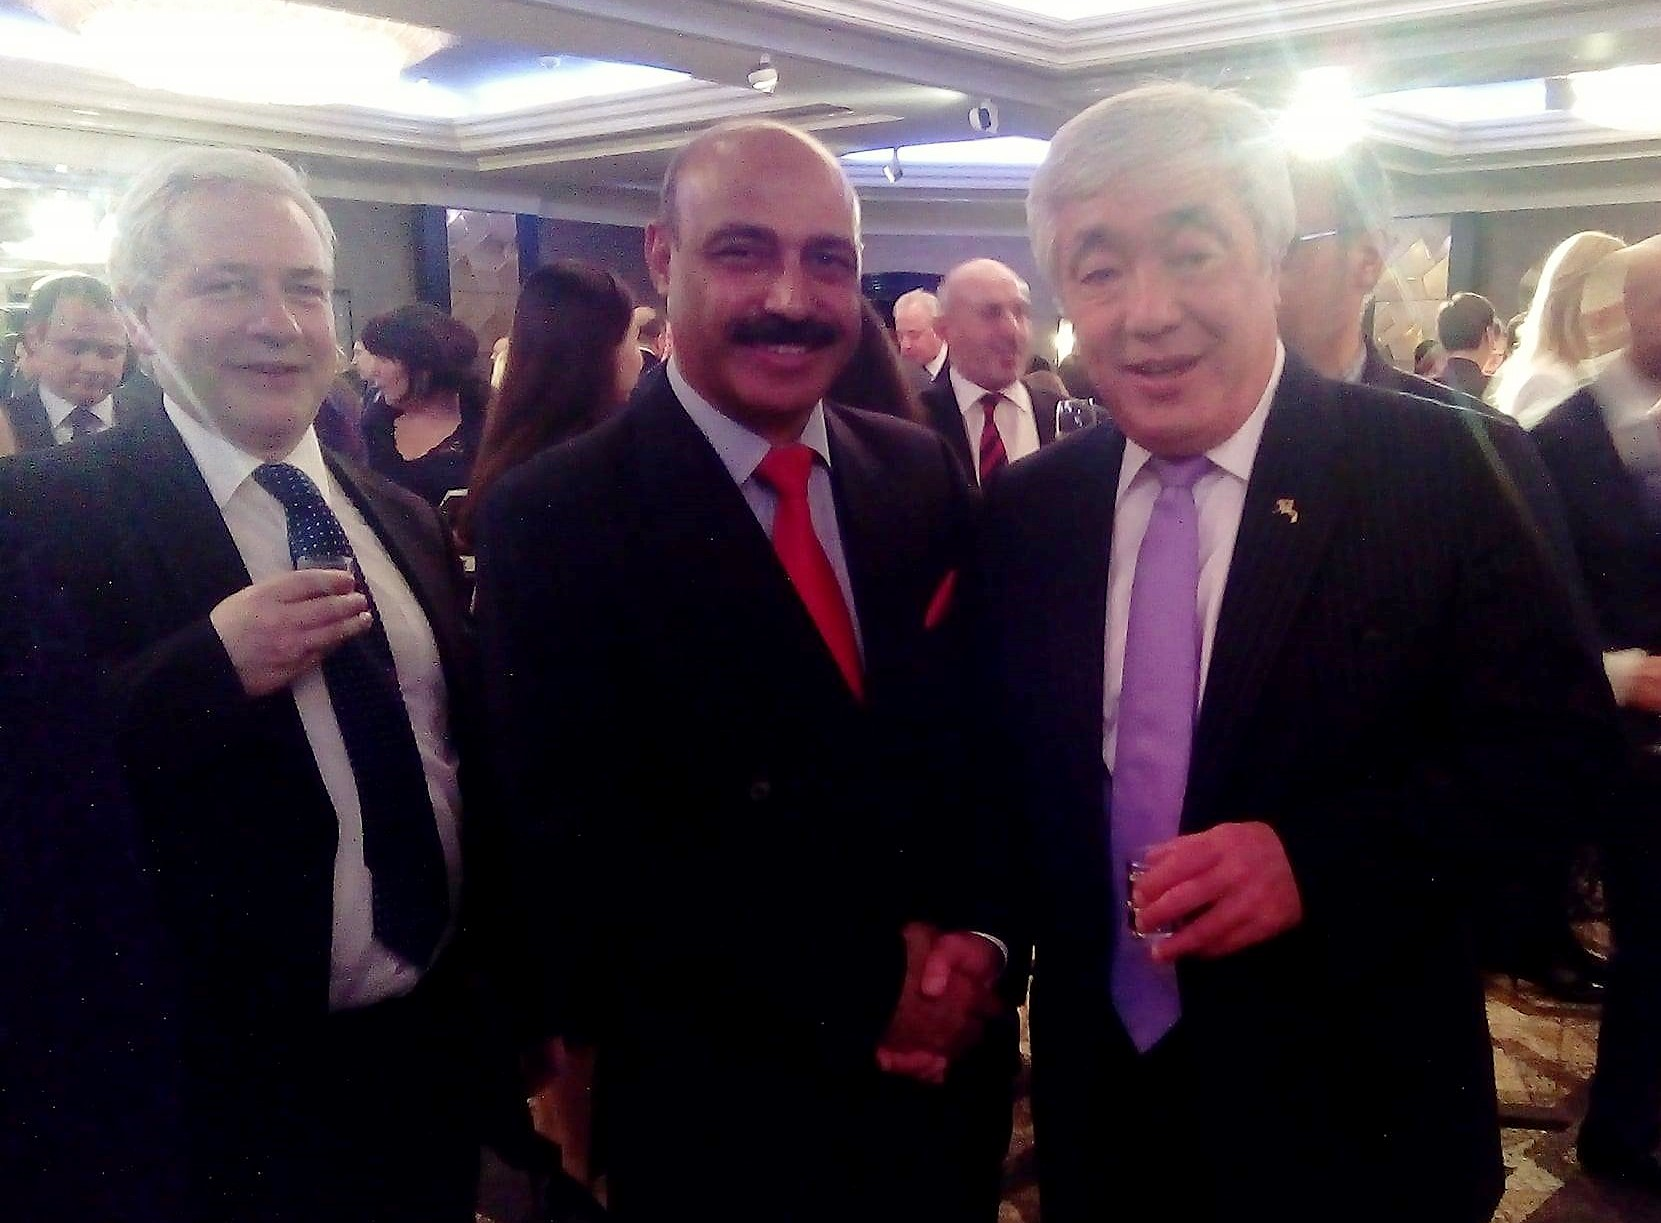 Dr Shahid Qureshi senior British Journalist and Chief Editor of The London Post meeting with HE. Erlan Idrisov, Ambassador to United Kingdom and former Minister Foreign Affairs, Republic of Kazakhstan at National Day Reception in London.